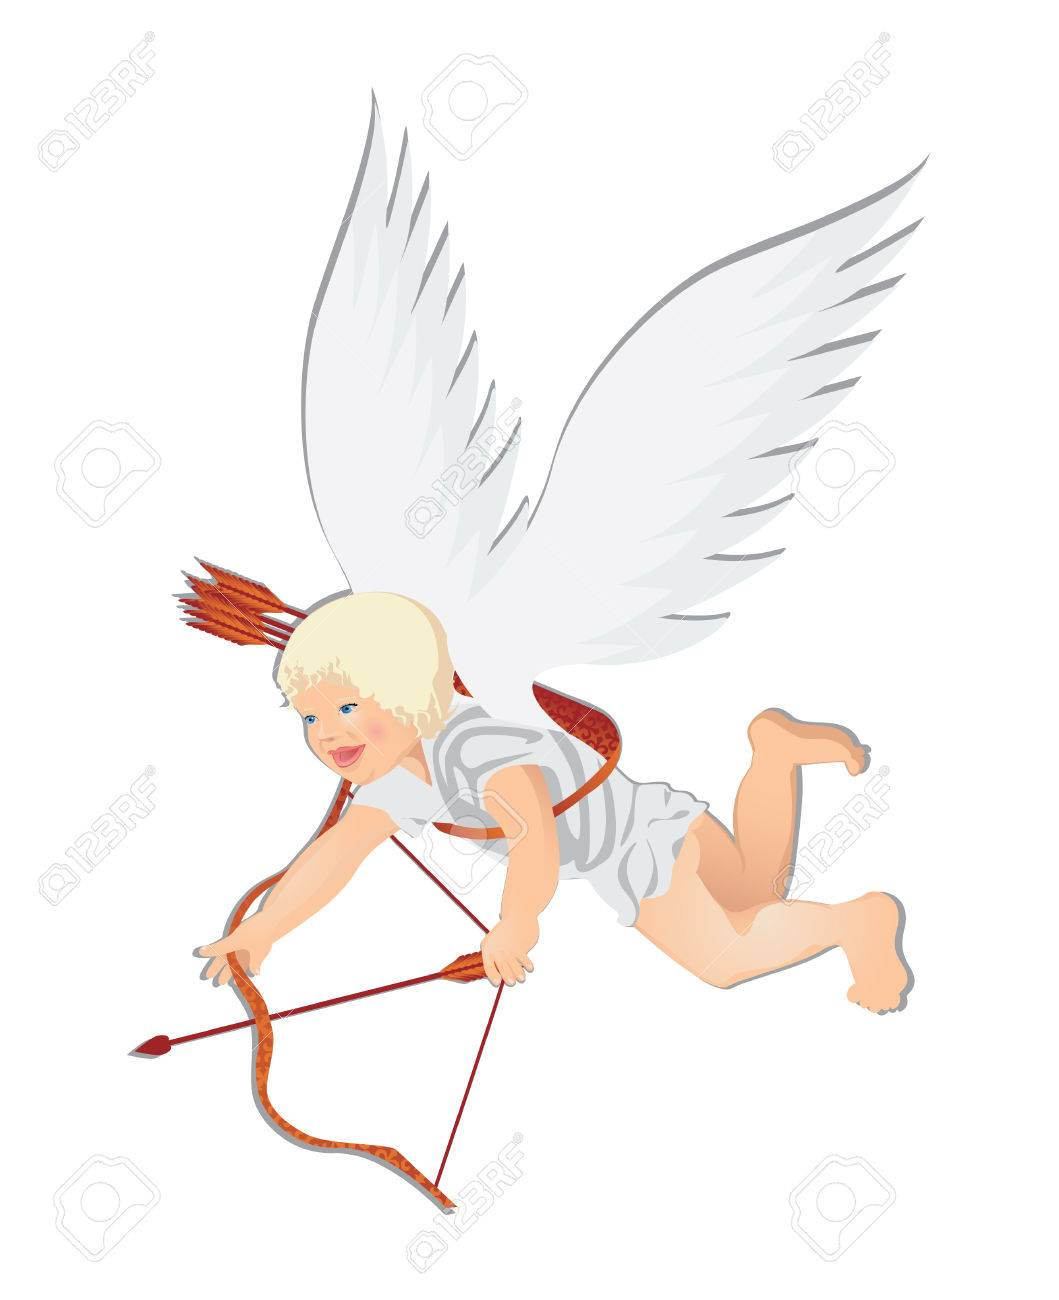 valentine cupid vector illustration of a flying cupid with arrows